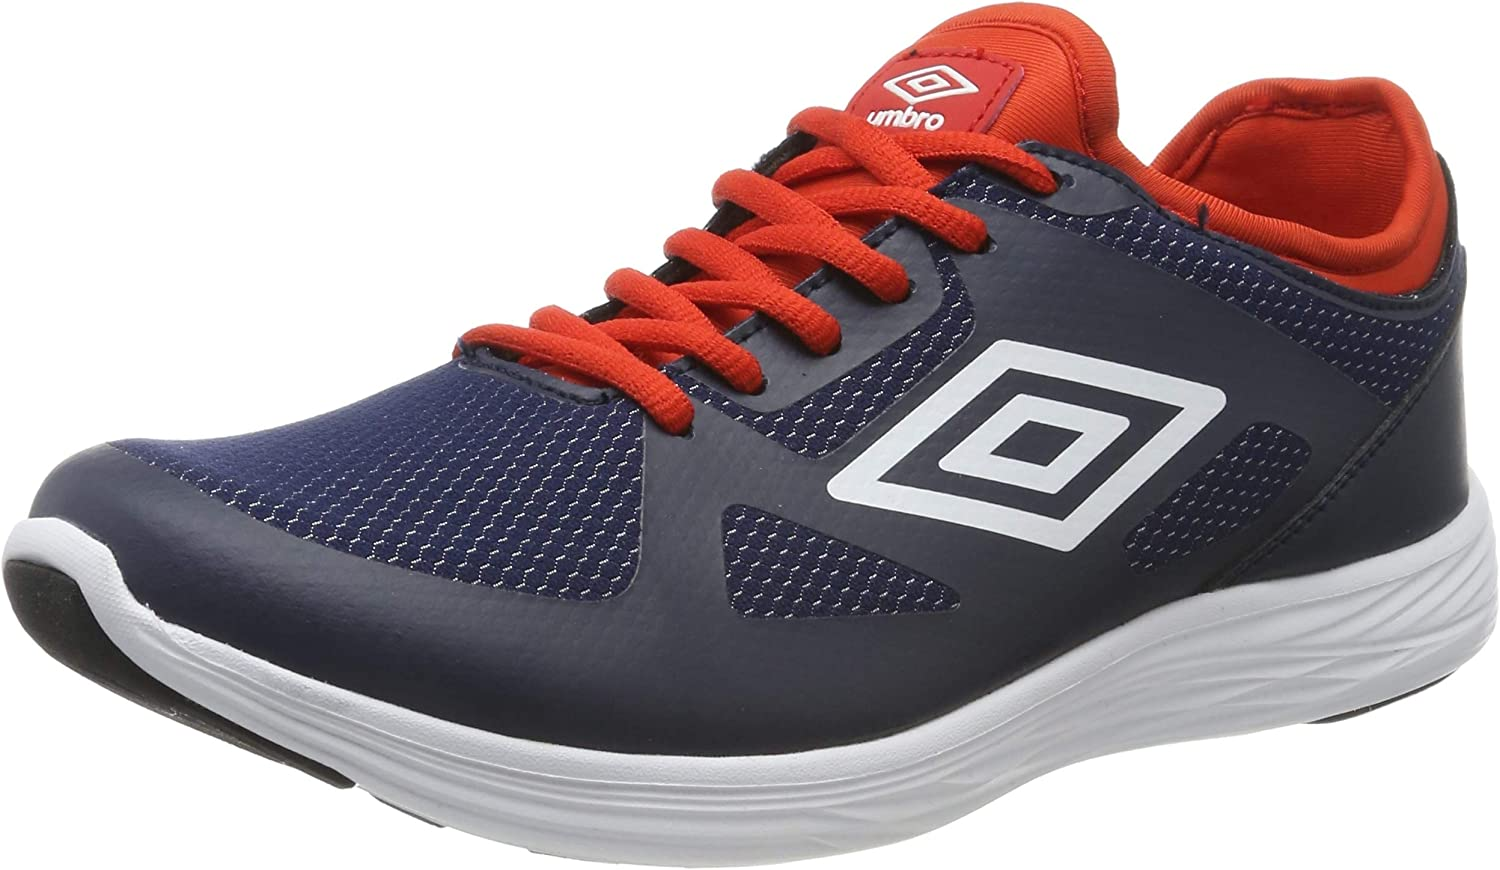 UMBRO Velo Run, Zapatillas de Running para Hombre: Amazon.es ...